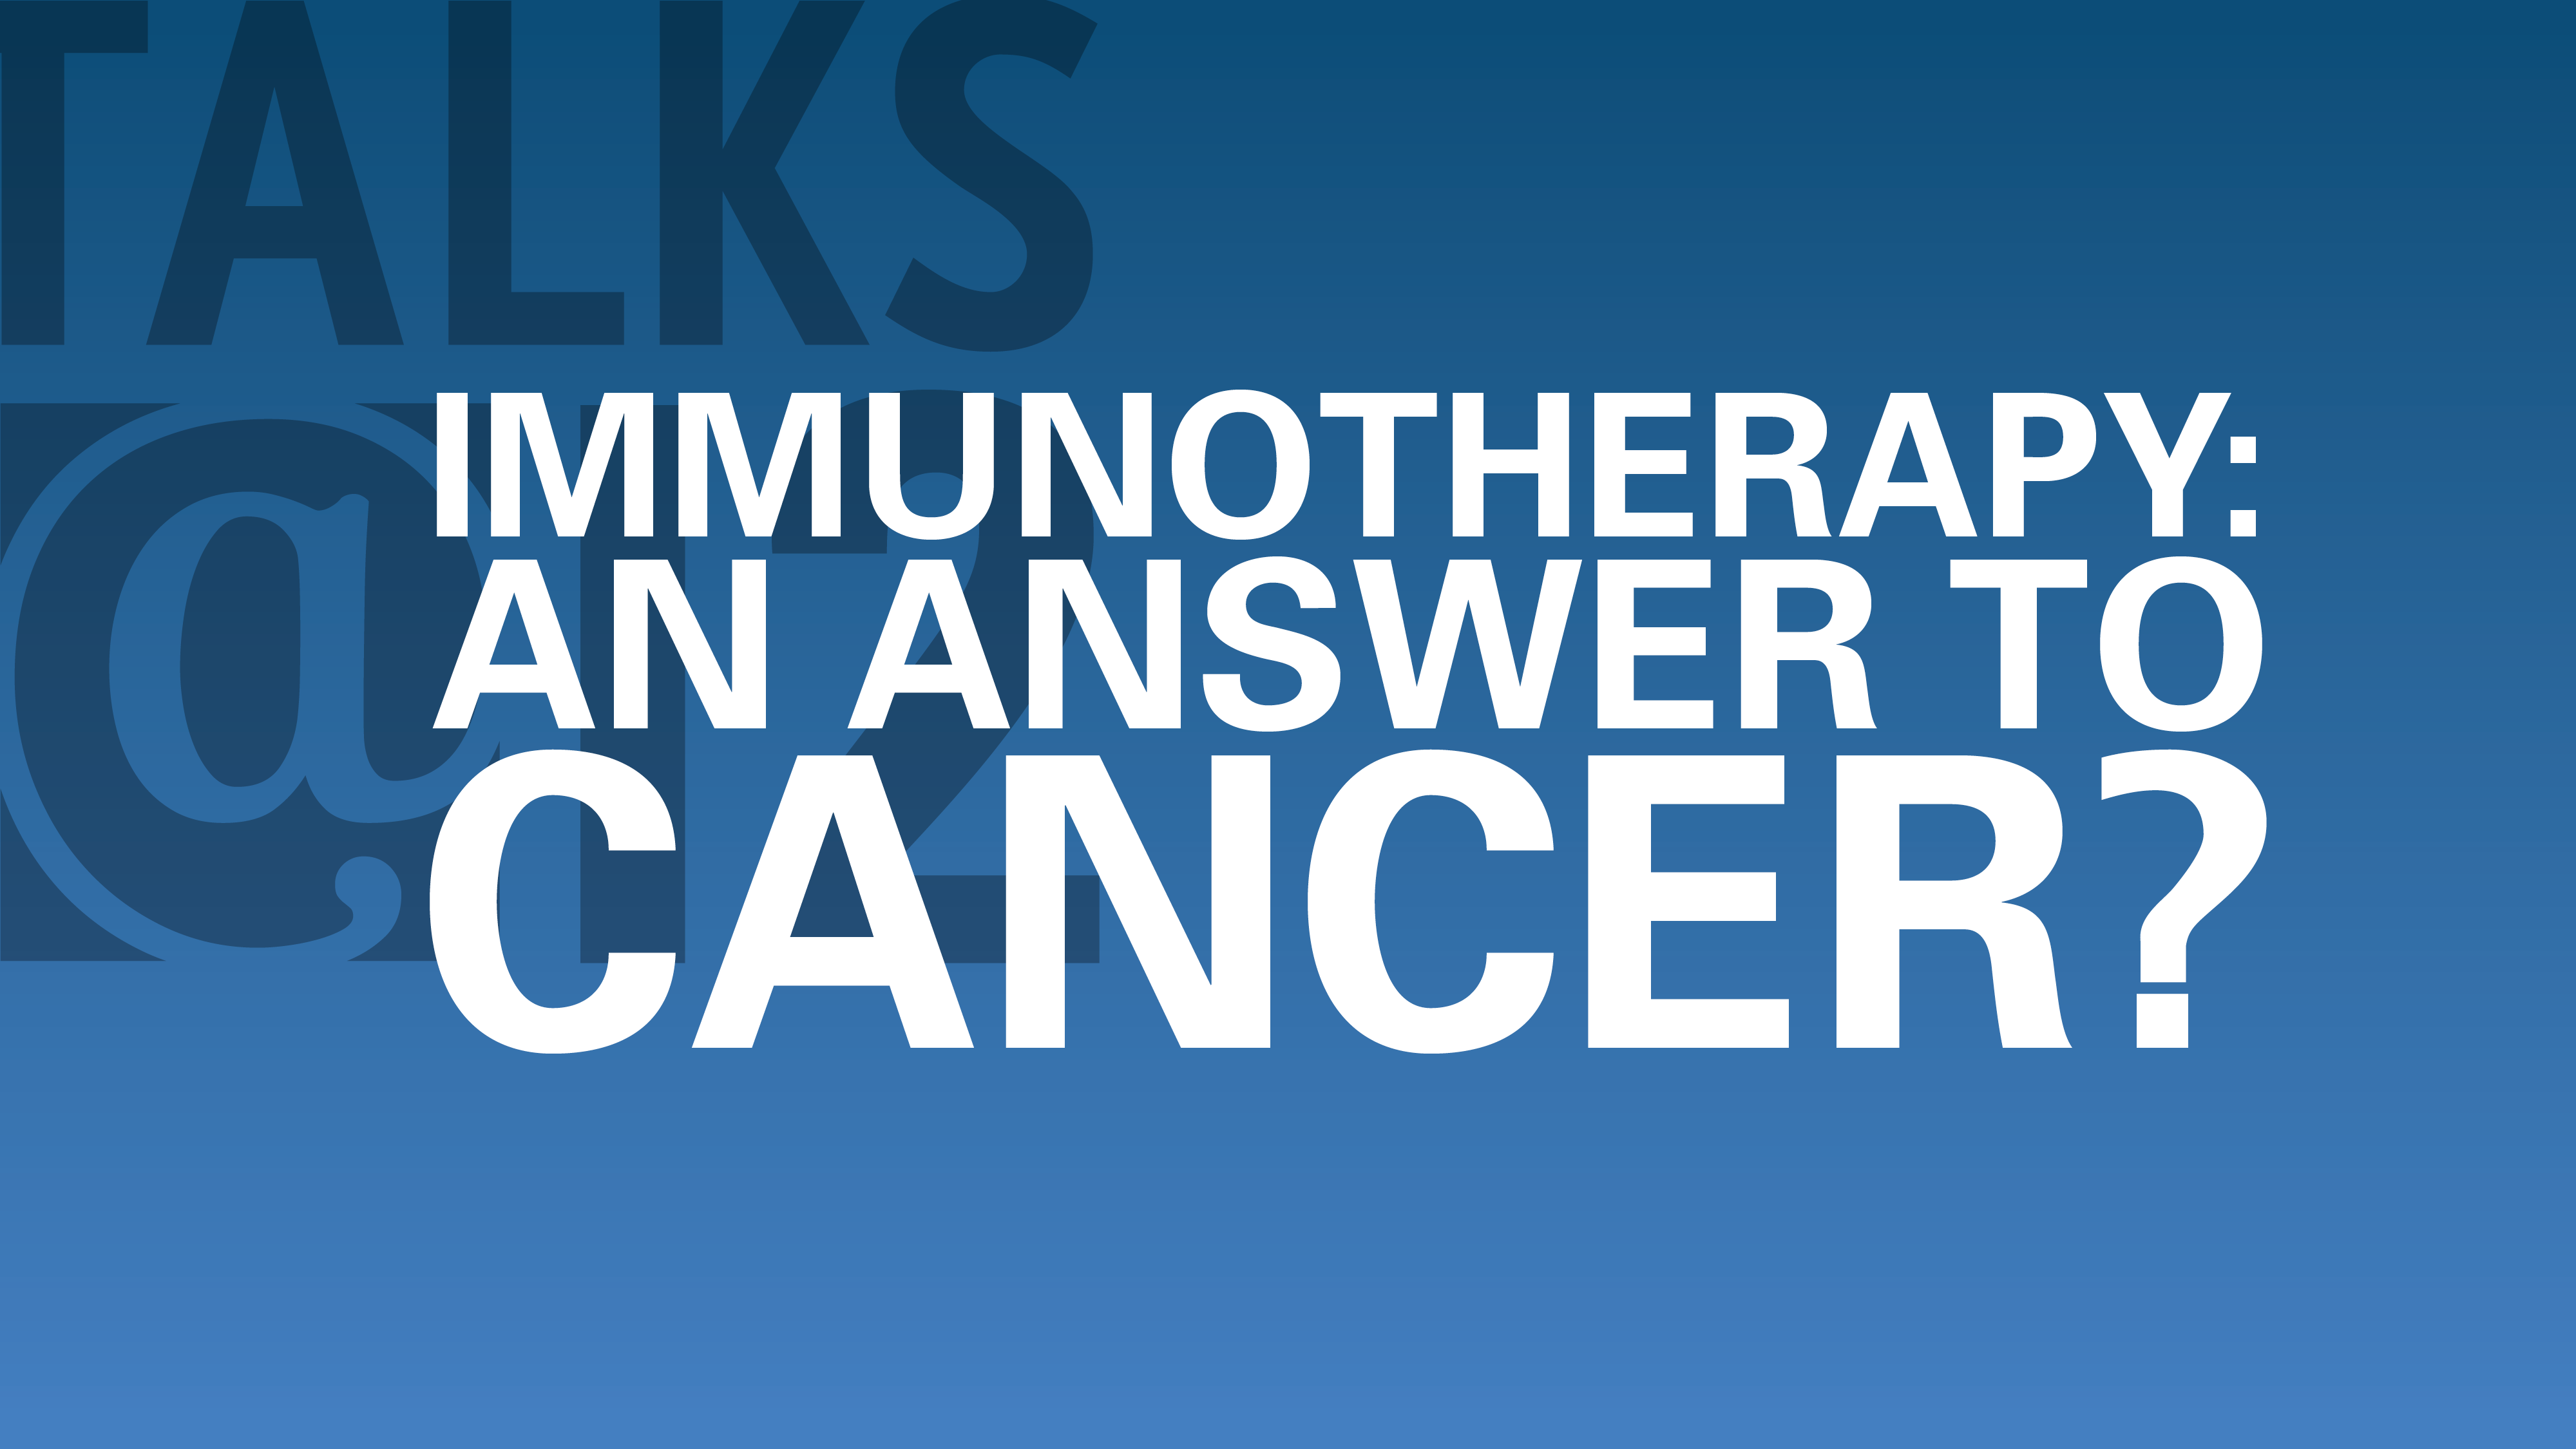 Immunotherapy: An answer to cancer?